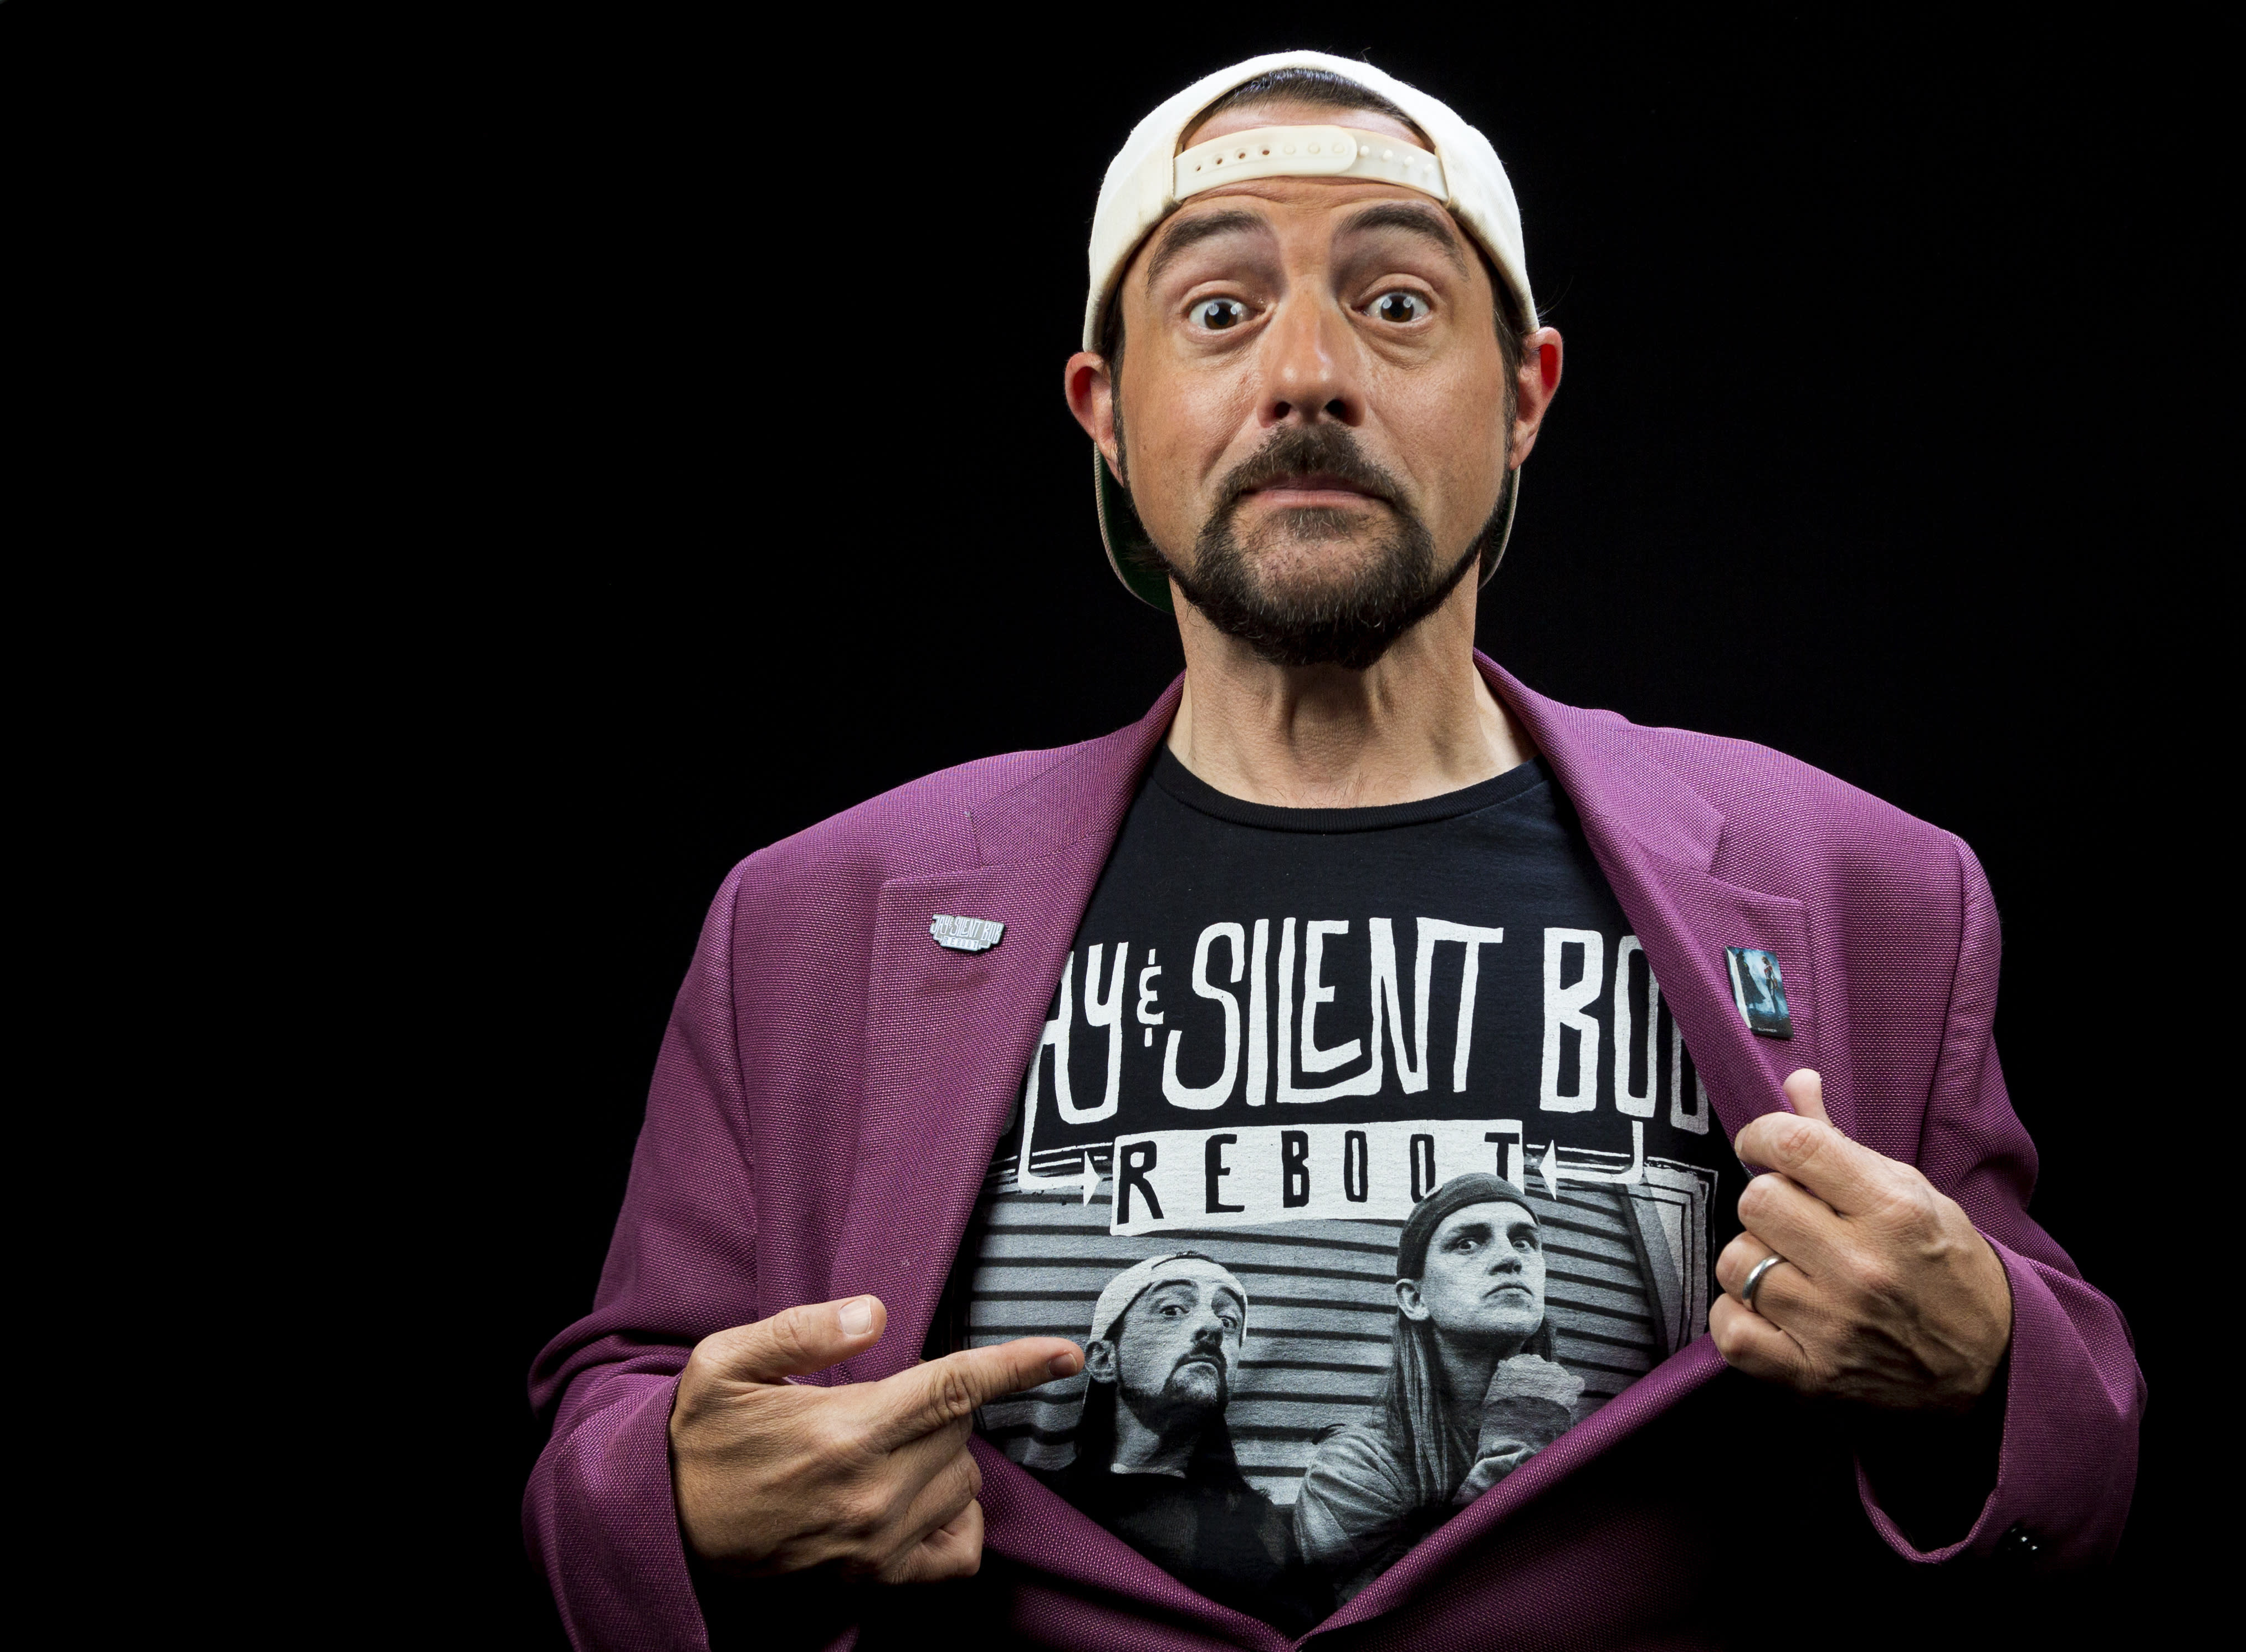 Kevin Smith thinks 'Avengers: Endgame' will be as important as the bible to future generations